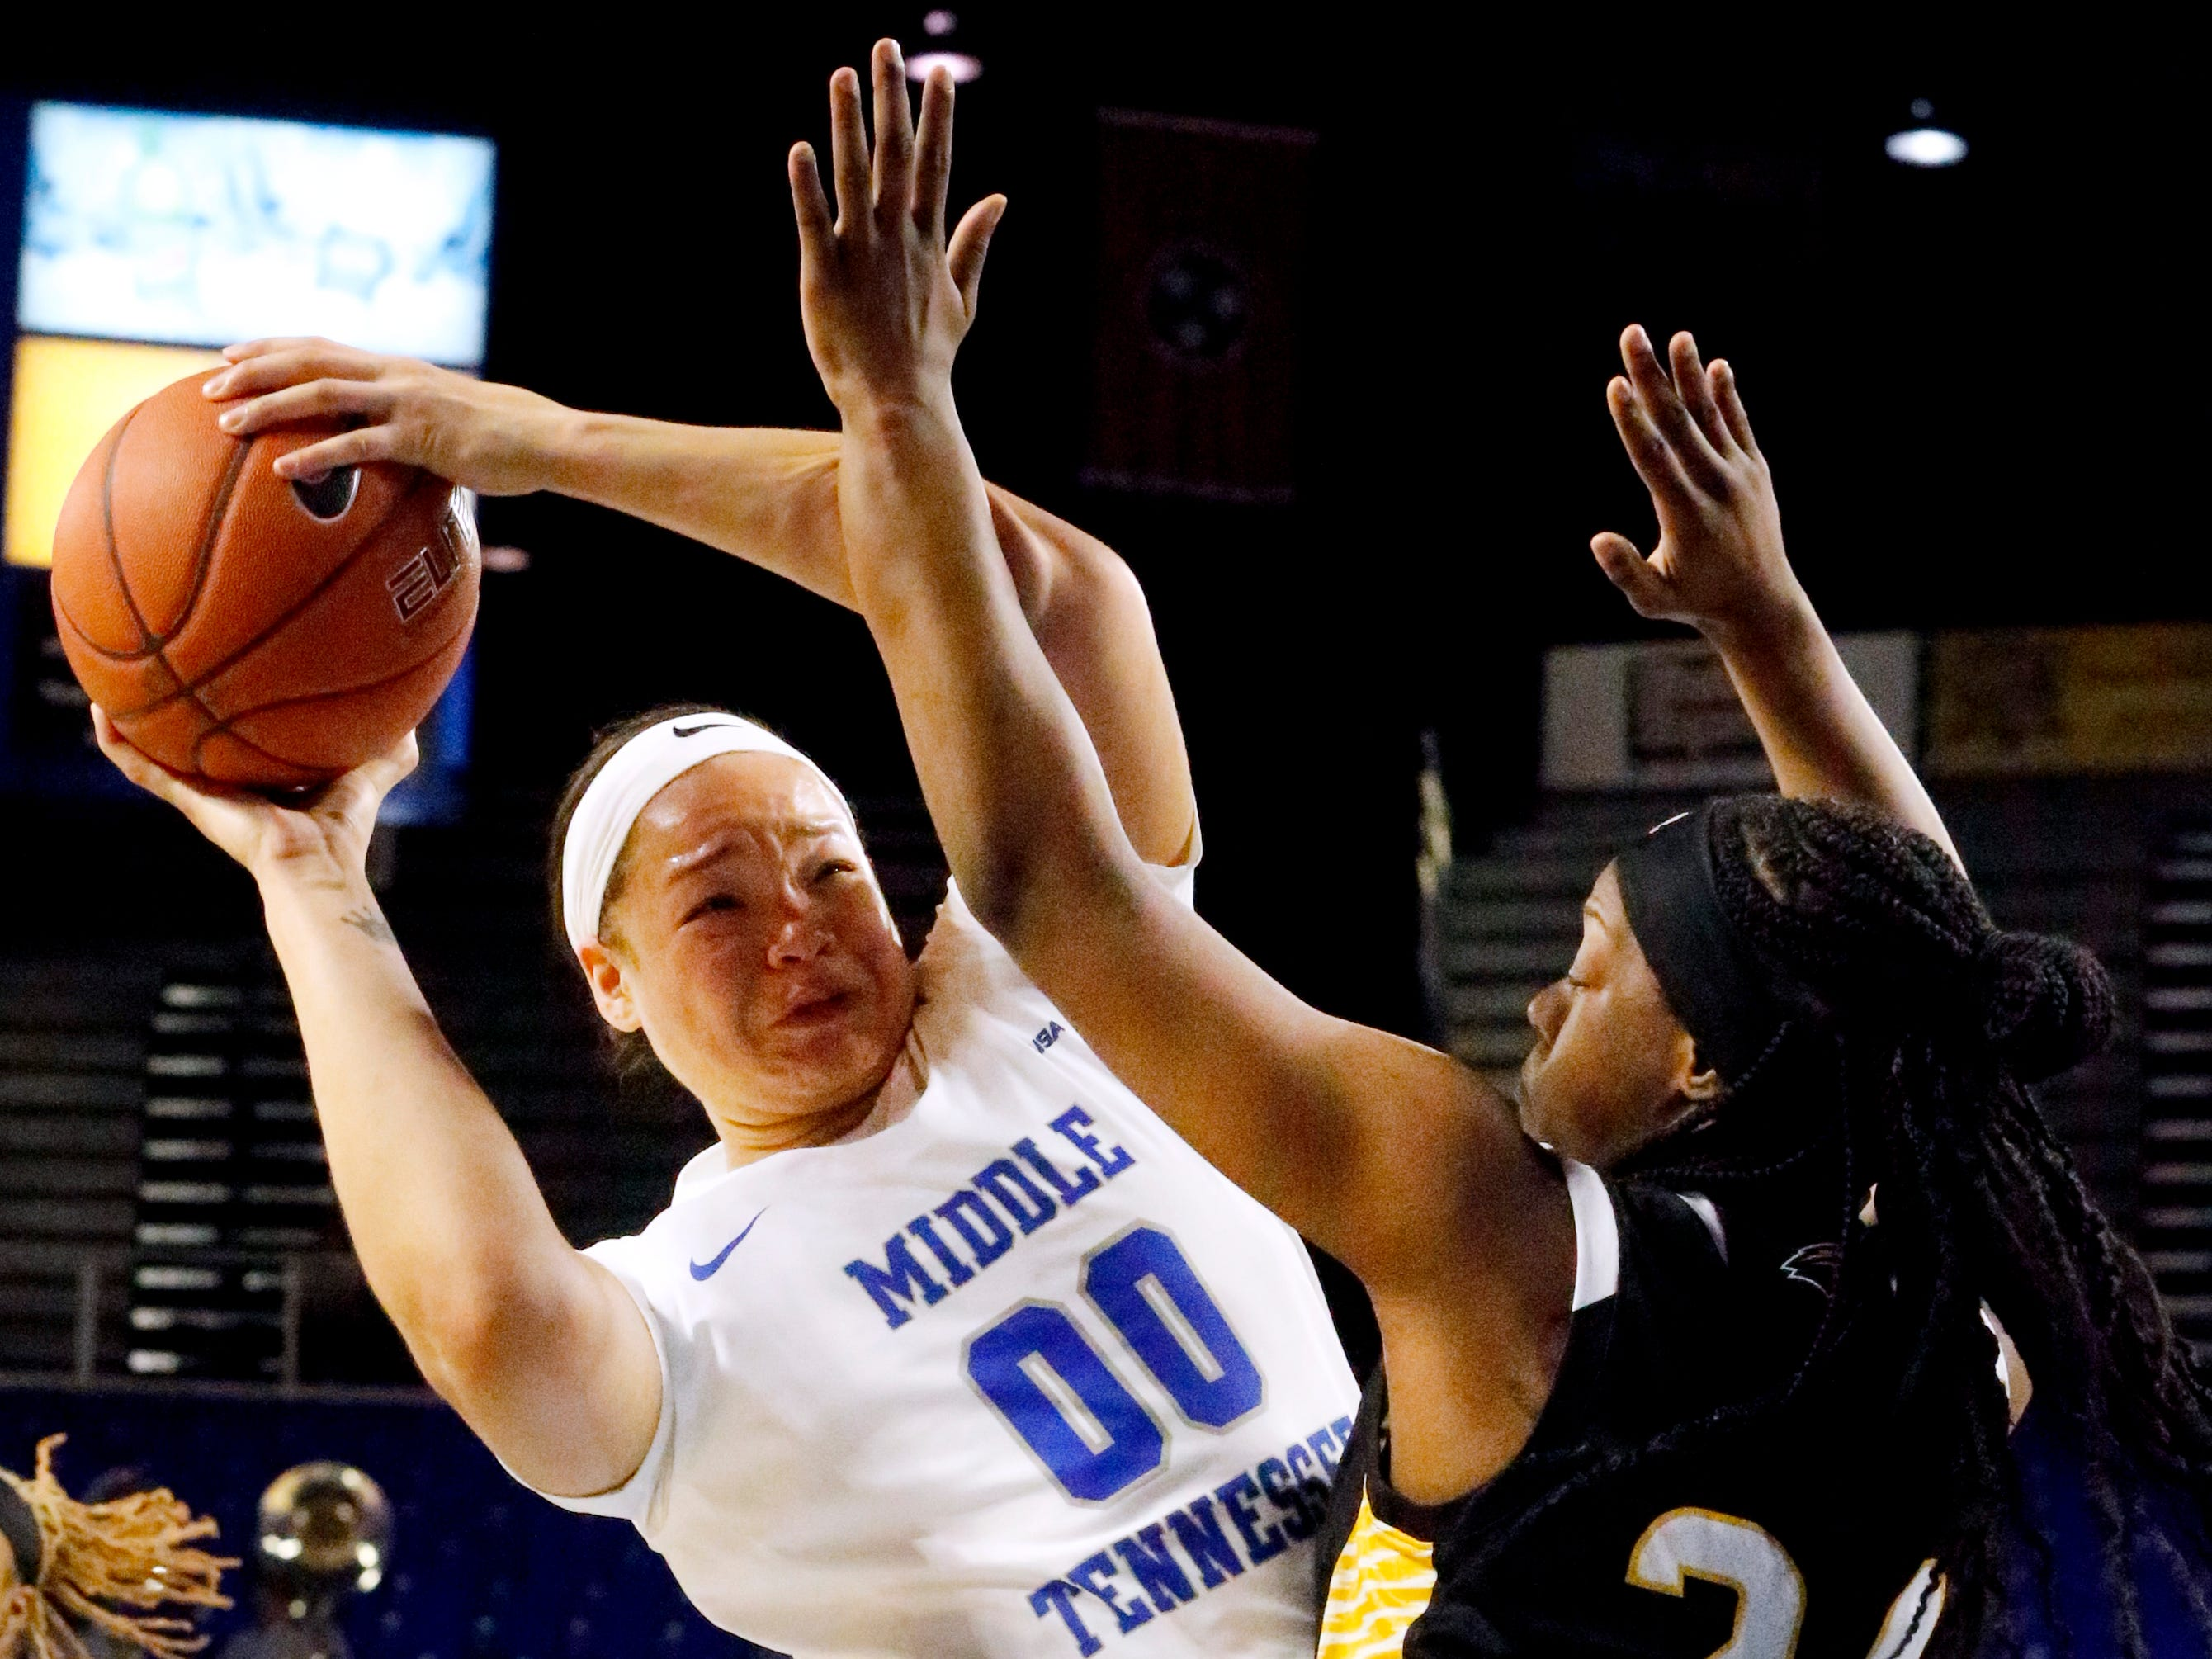 MTSU's forward Alex Johnson (00) goes for a shot as she is defended by Southern Miss' Kennedy Gavin (24), on Thursday Jan. 10, 2019.